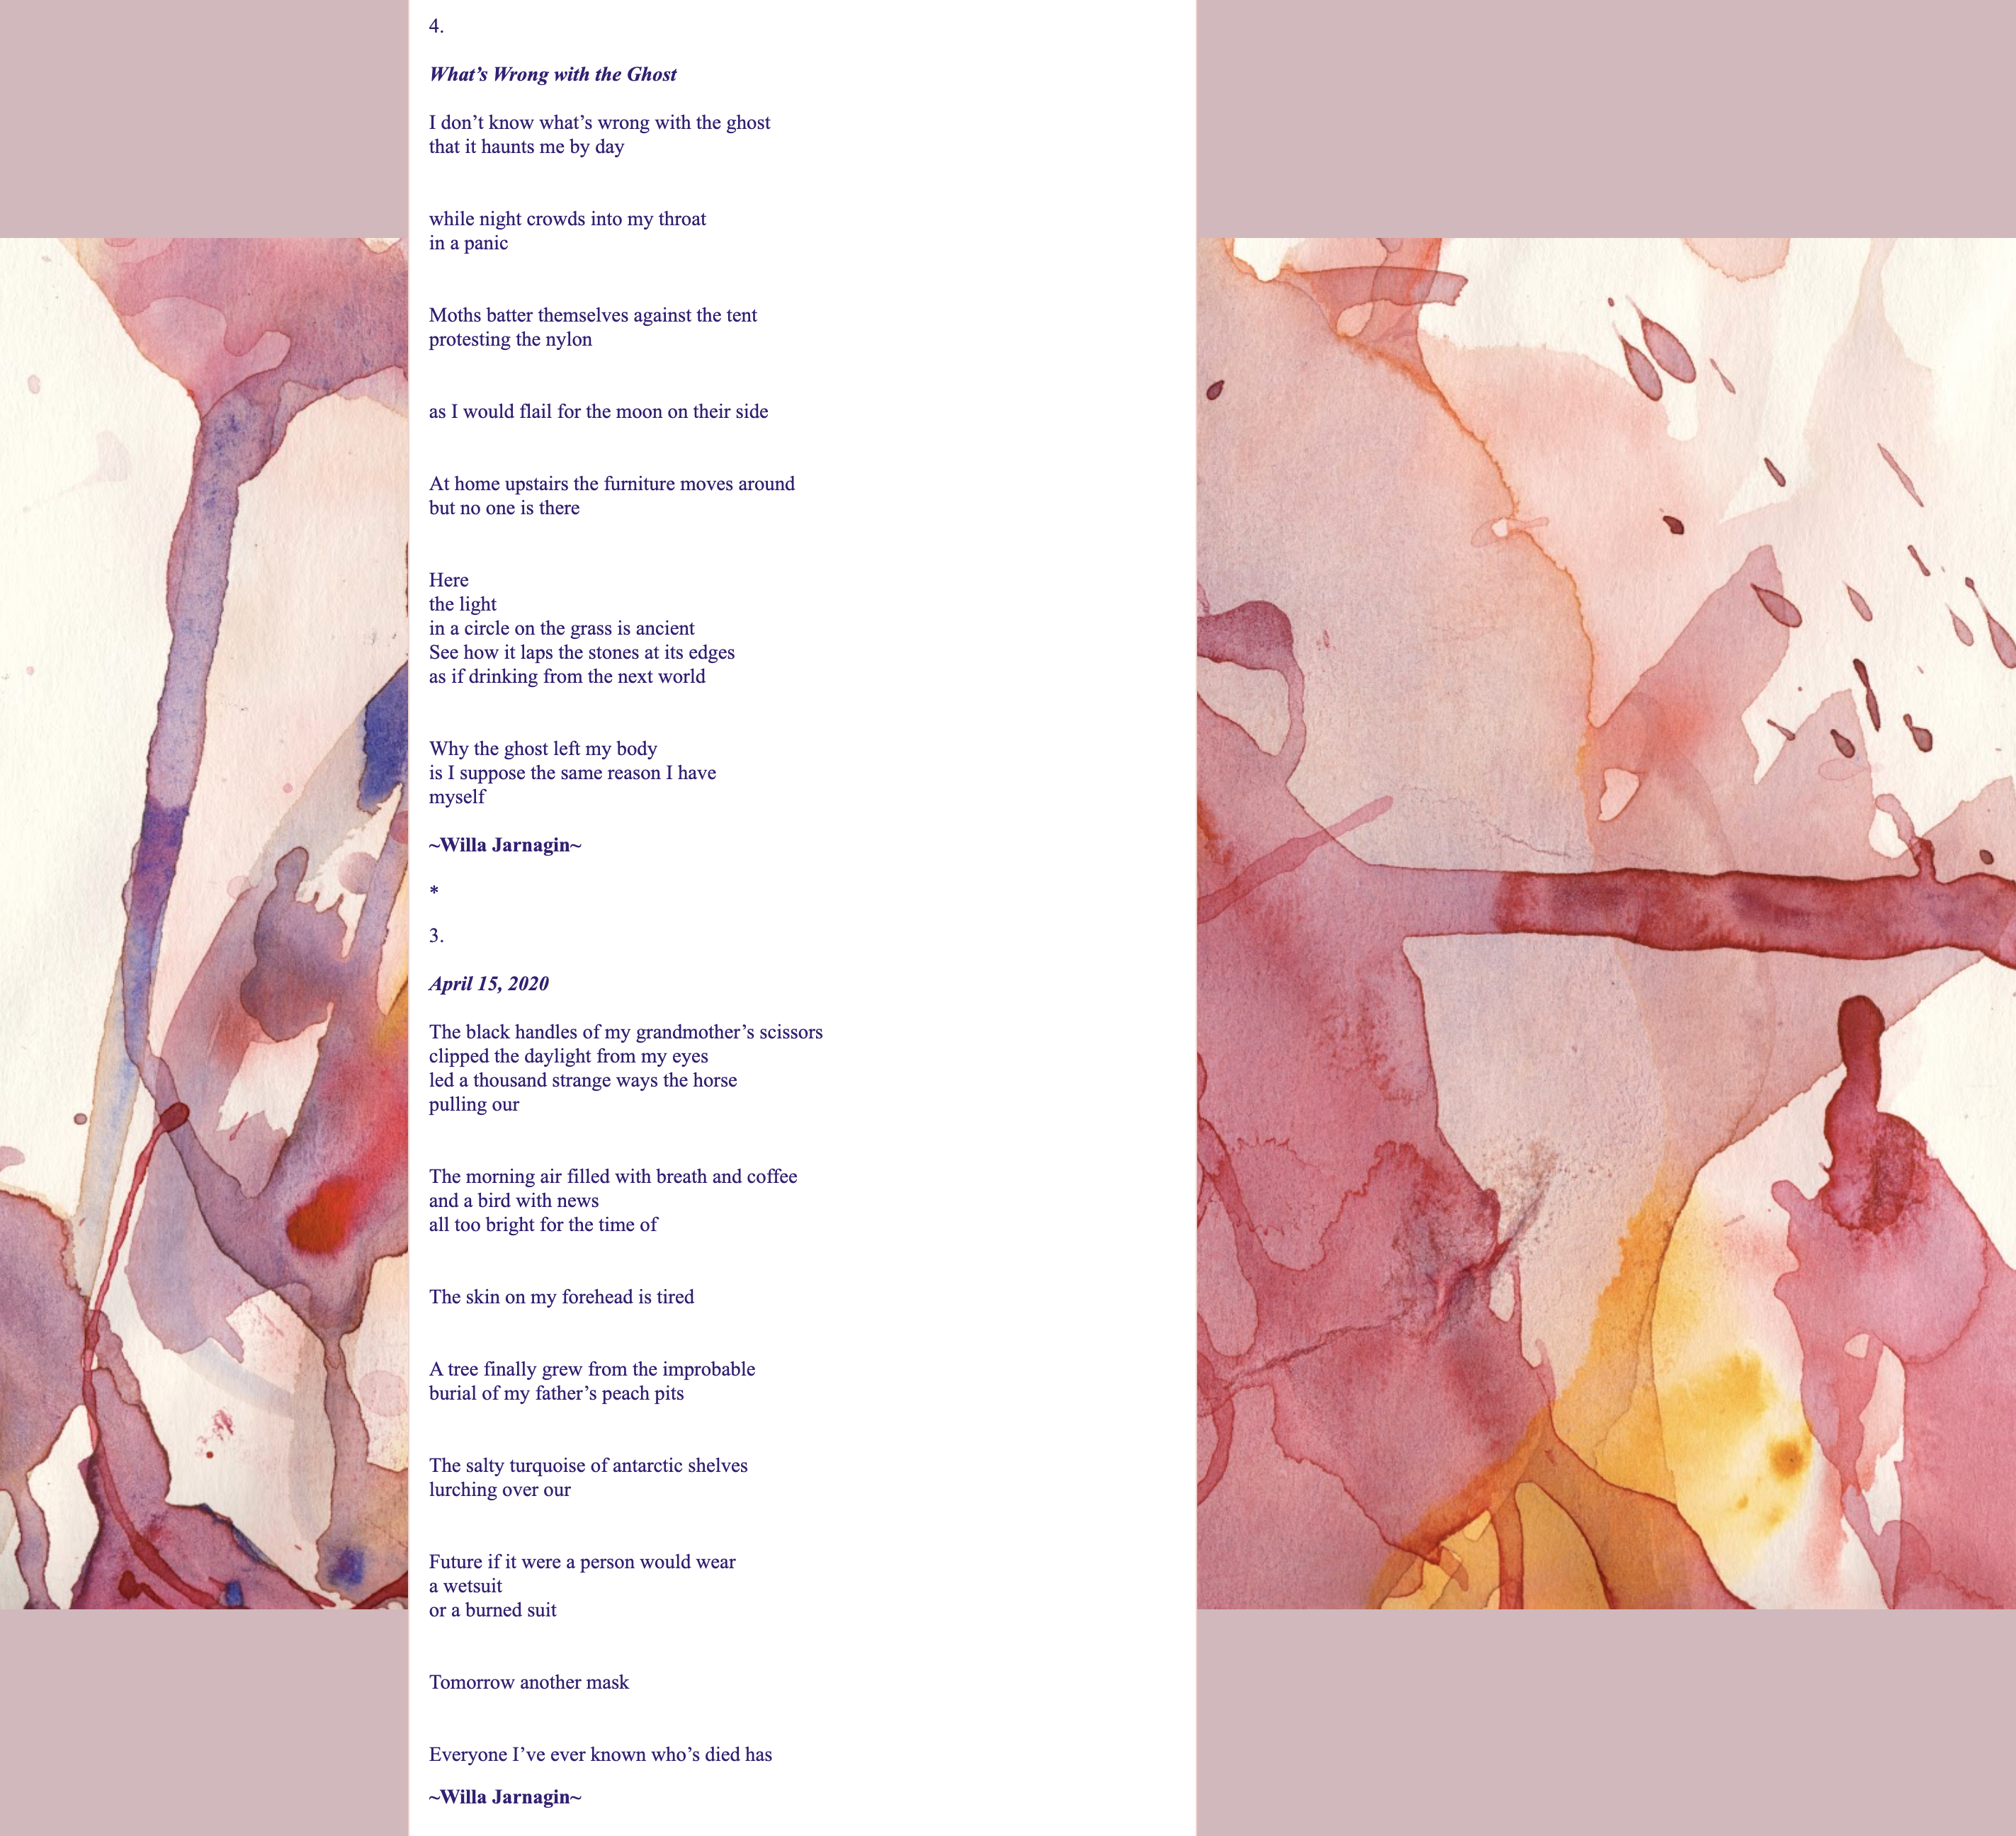 poems displayed over a watercolor painting - text below image